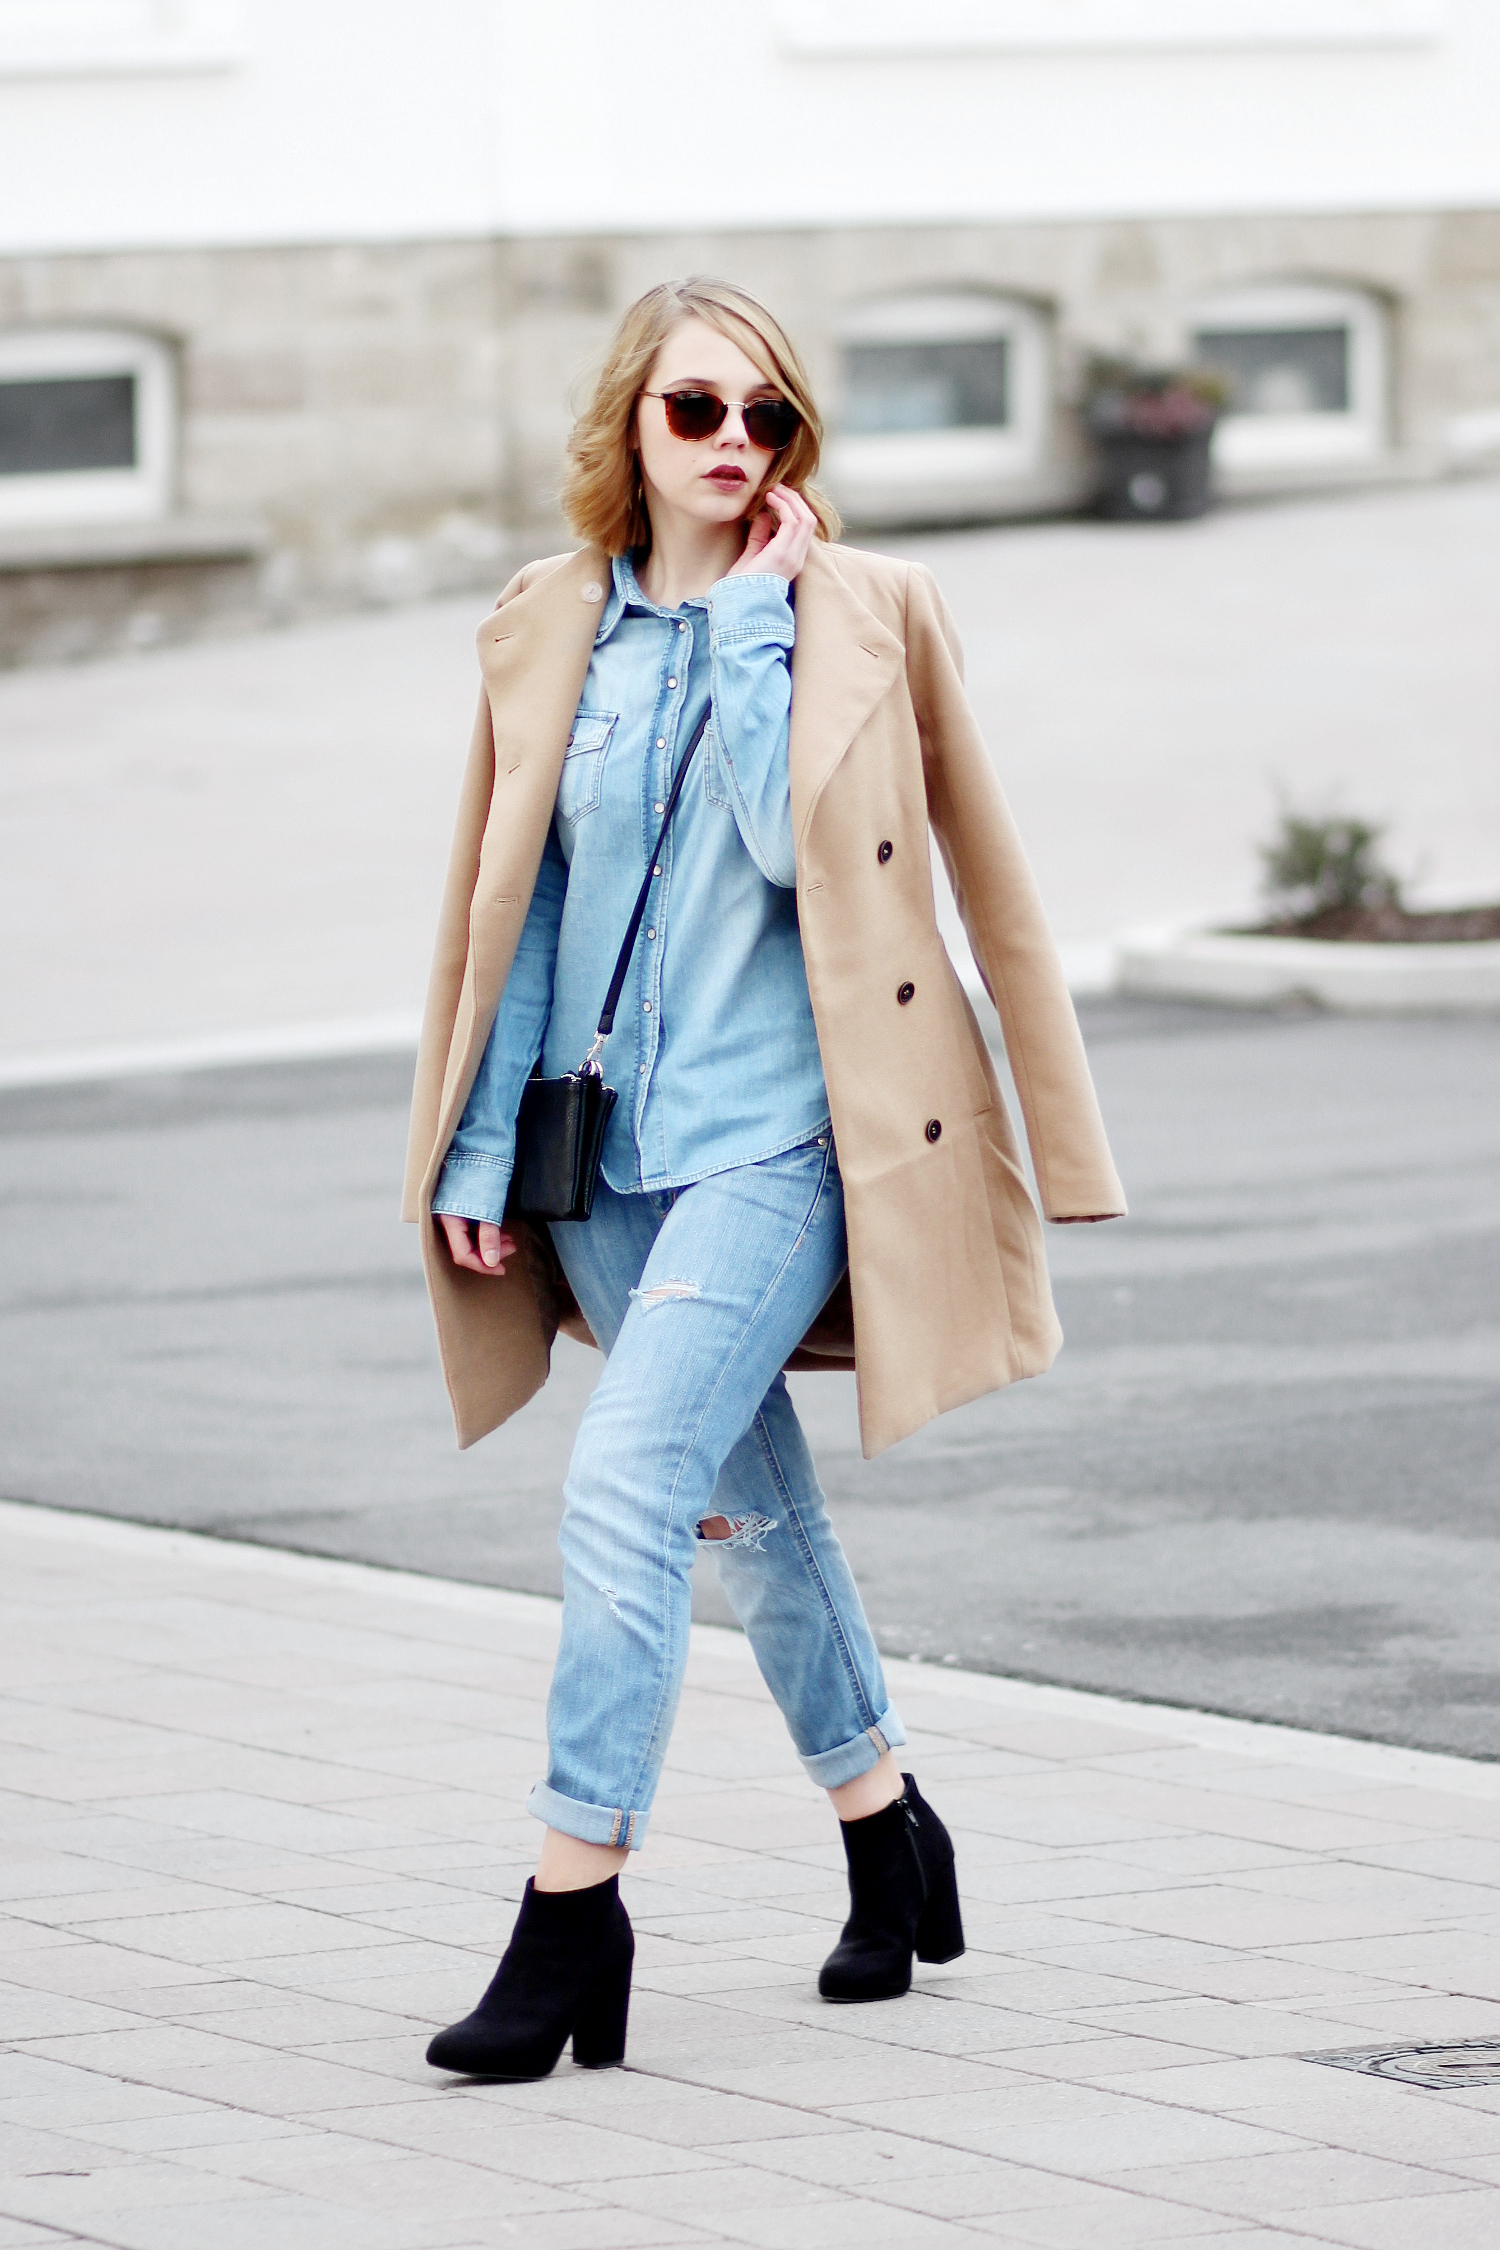 bezauberndenana-fashionblog-denim-on-denim-outfit-boyfriend-jeans-camel-mantel-streetstyle (3)